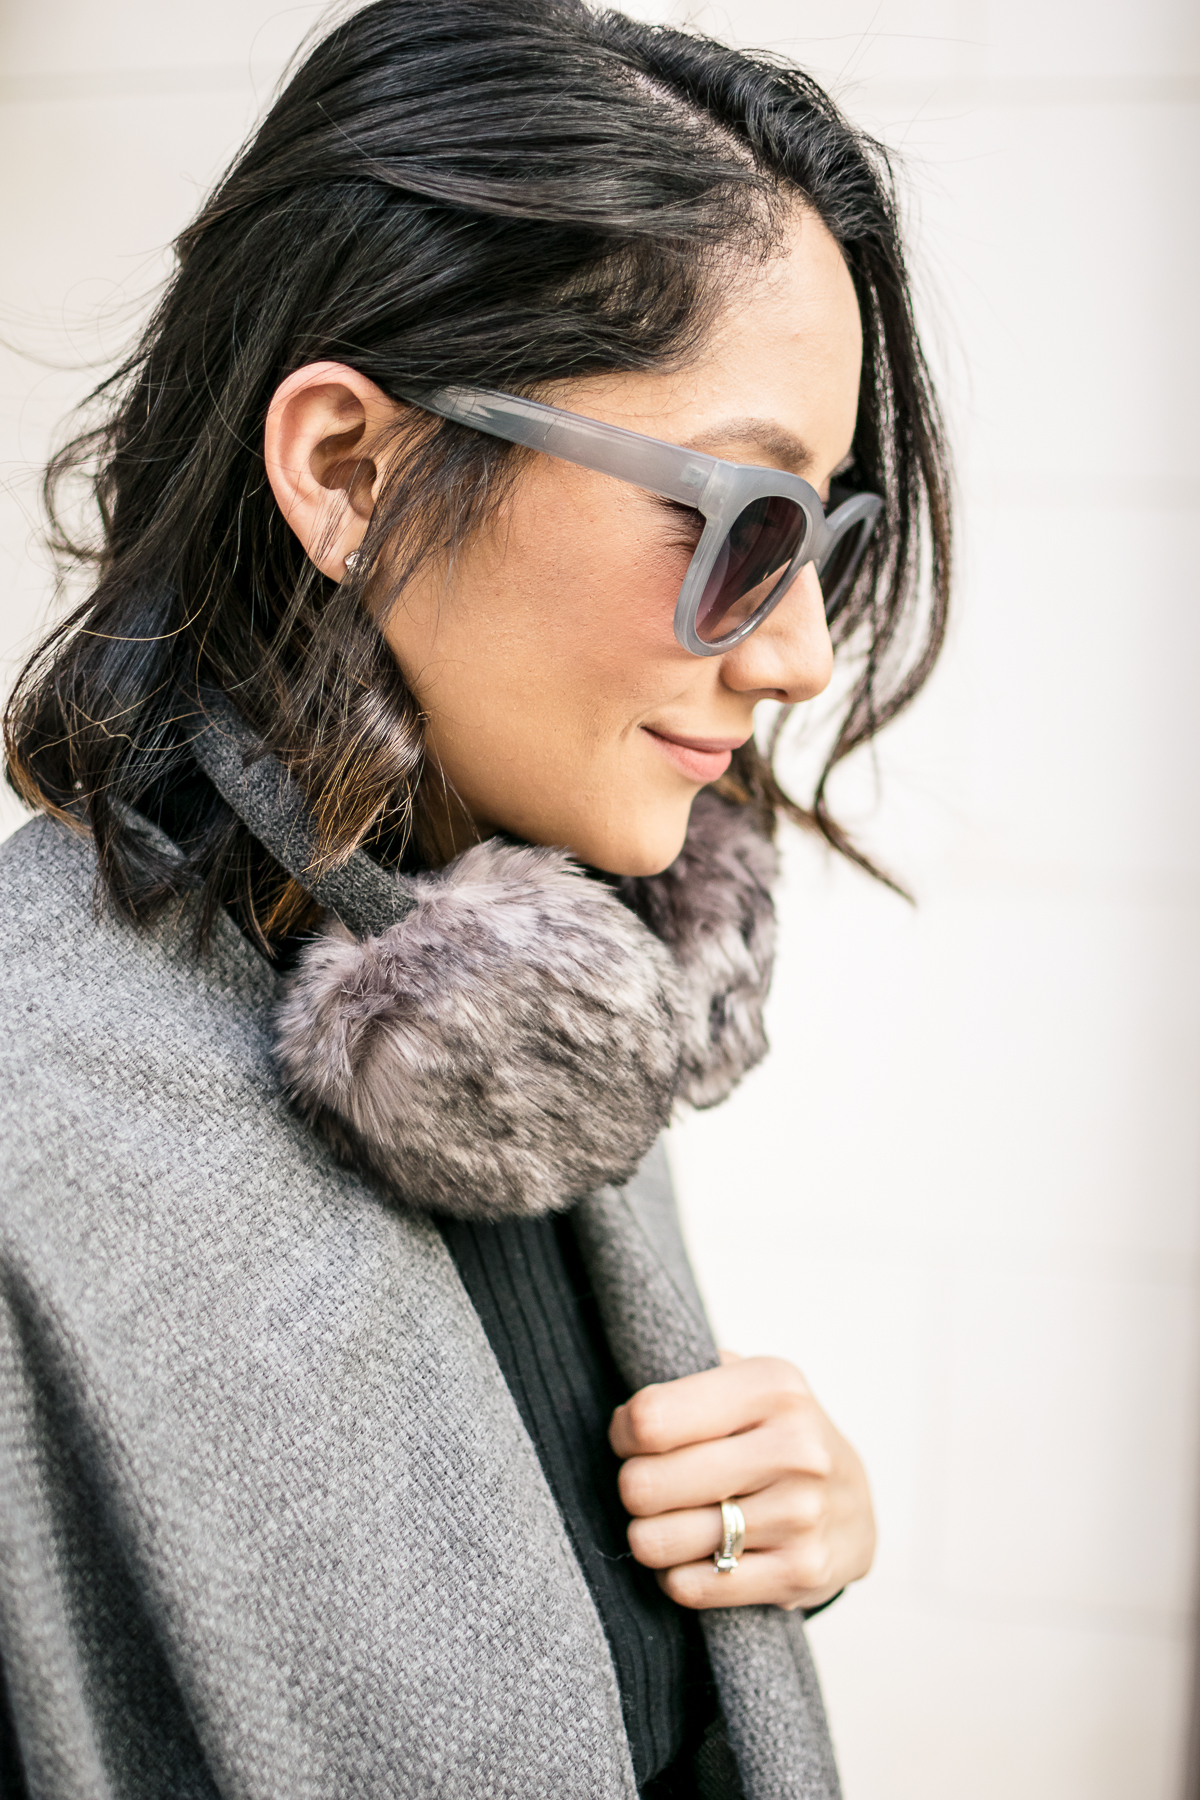 Staying on budget and looking trendy this winter | Earmuffs | Grey Subglasses